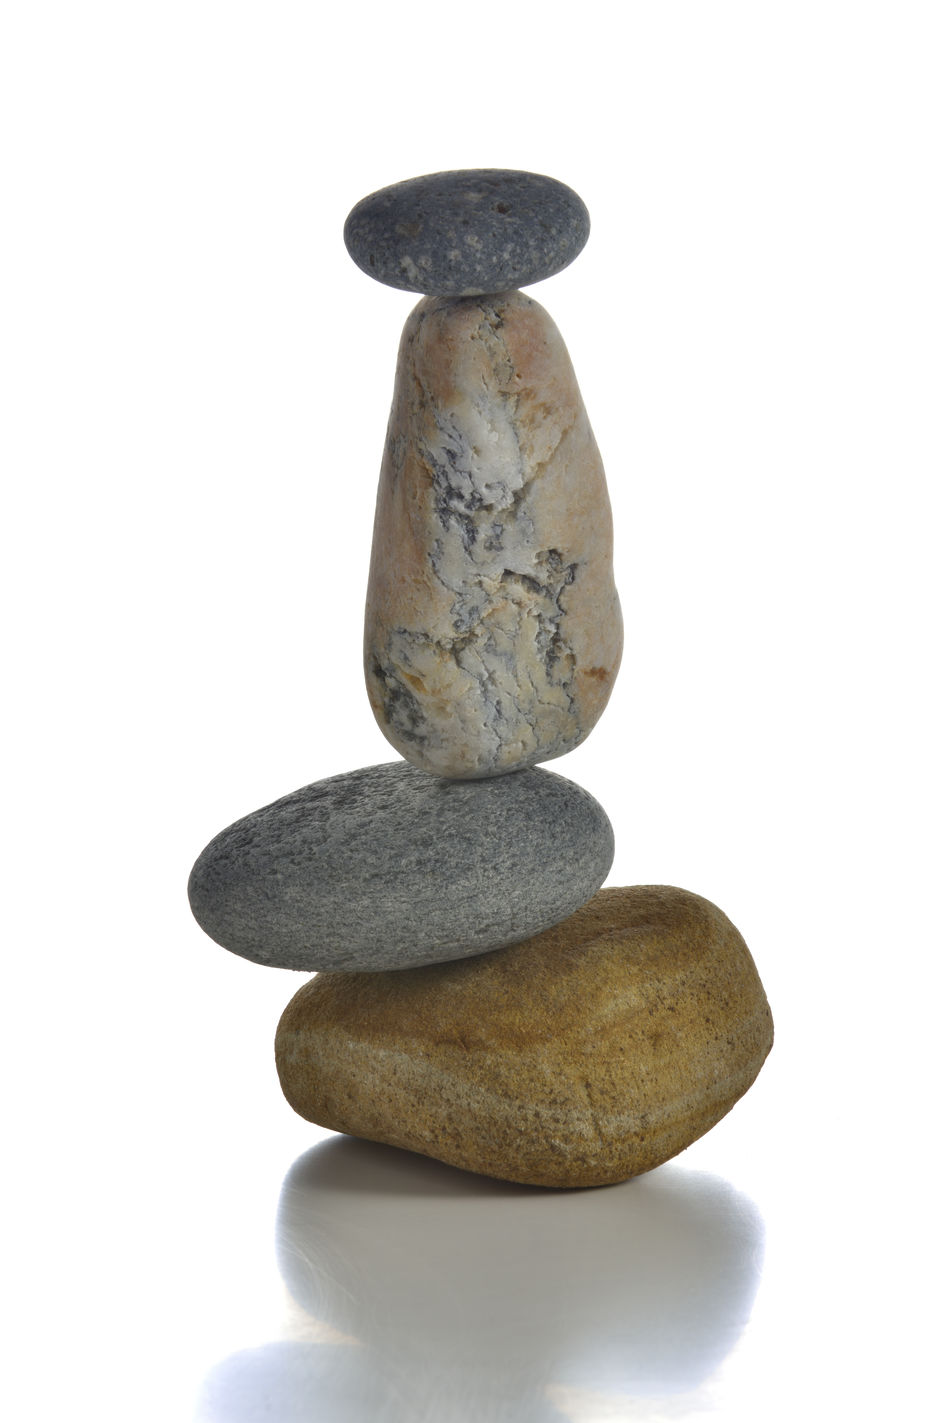 AIMS Close-up Effort Explore Force Help Mortar And Pestle Nature No People Other Partner Pebble Reached Relationship Rock - Object Stand Up Standard Pole Stone - Object Taiwan Team Up White Background